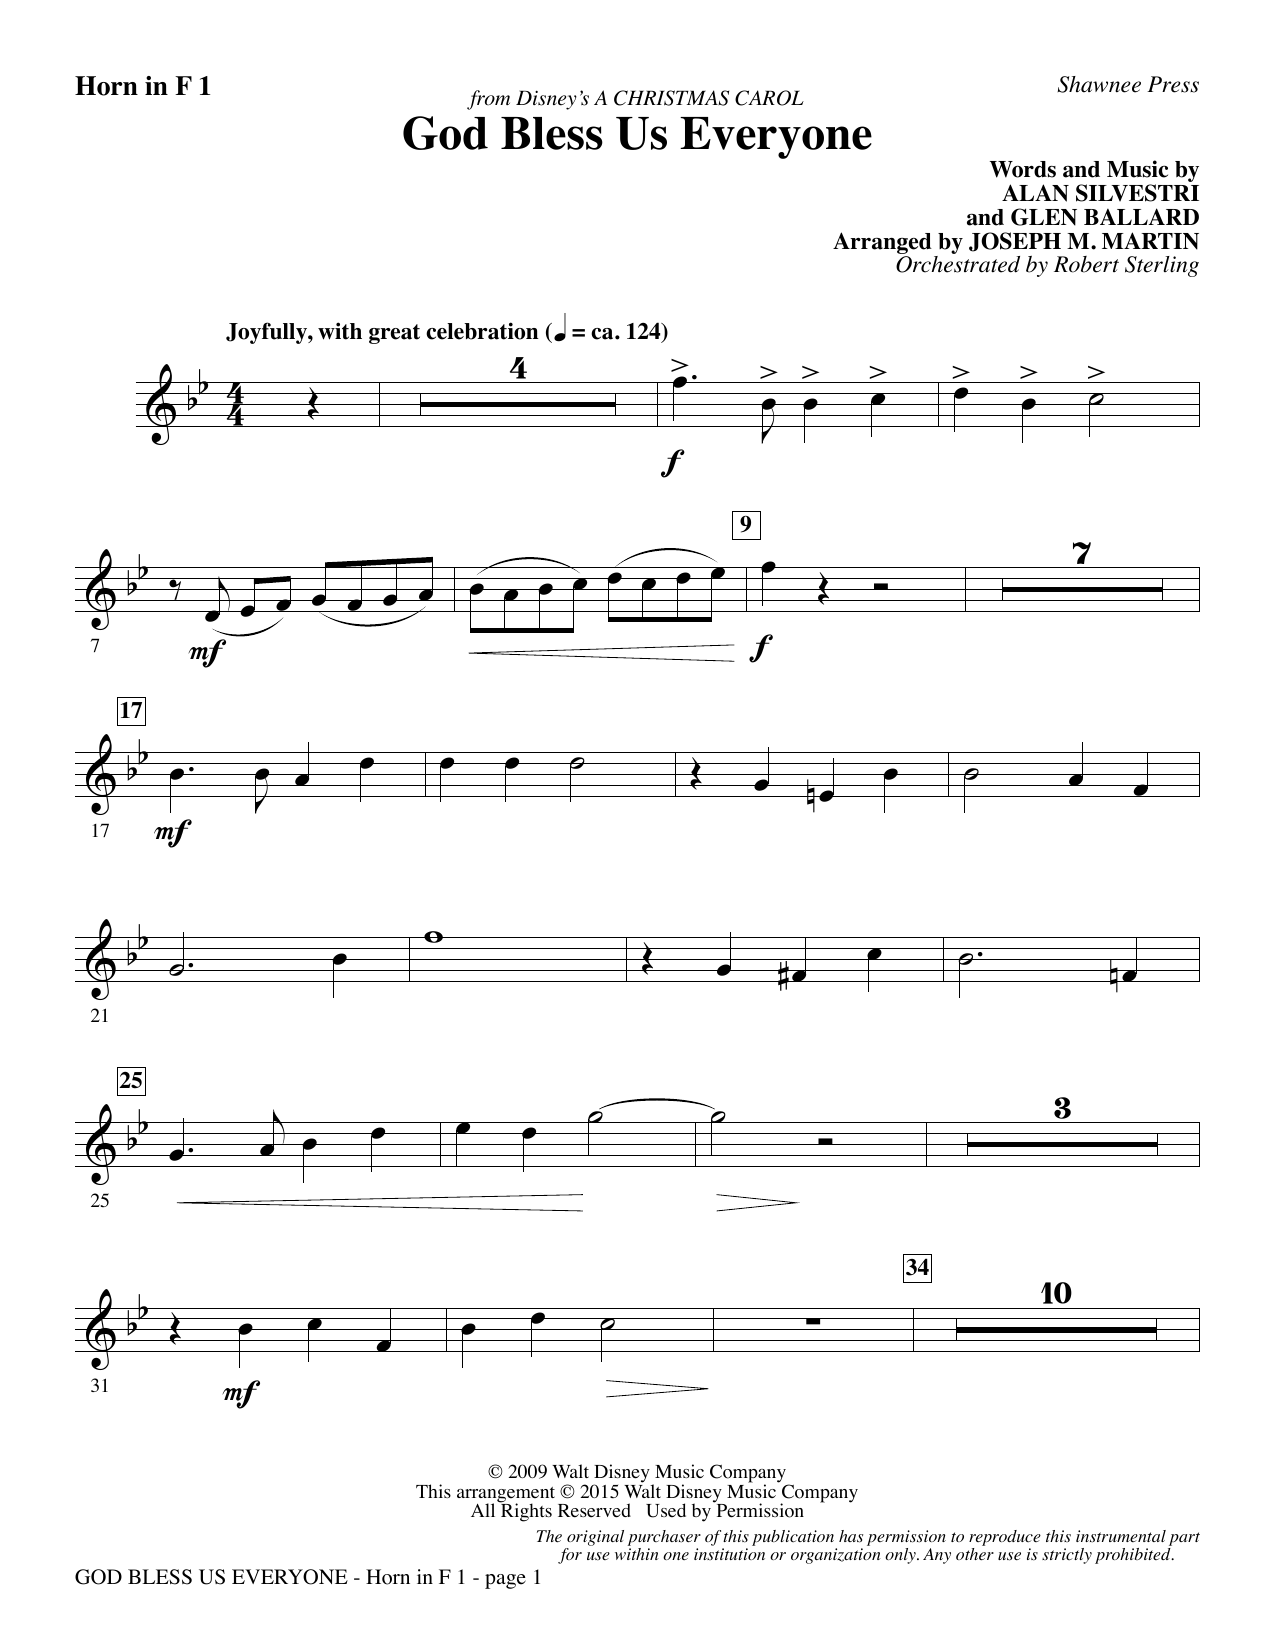 God Bless Us Everyone (from Disney's A Christmas Carol) - F Horn 1 | Sheet Music Direct